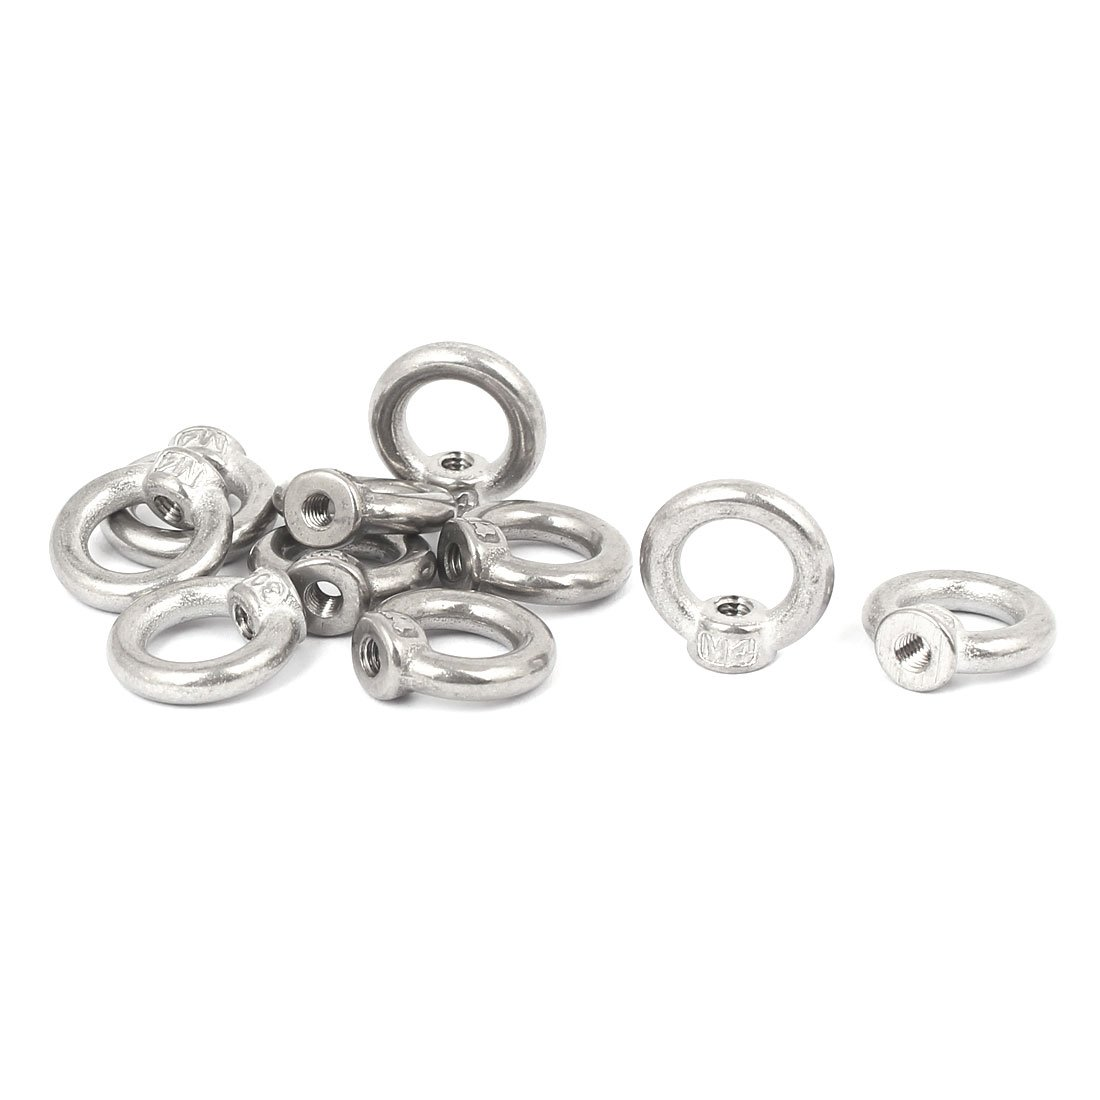 uxcell a16080200ux0209 M4 Thread Dia 304 Stainless Steel Ring Shape Lifting Eye Nut Fastener Pack of 10 61QuMtMOvtL